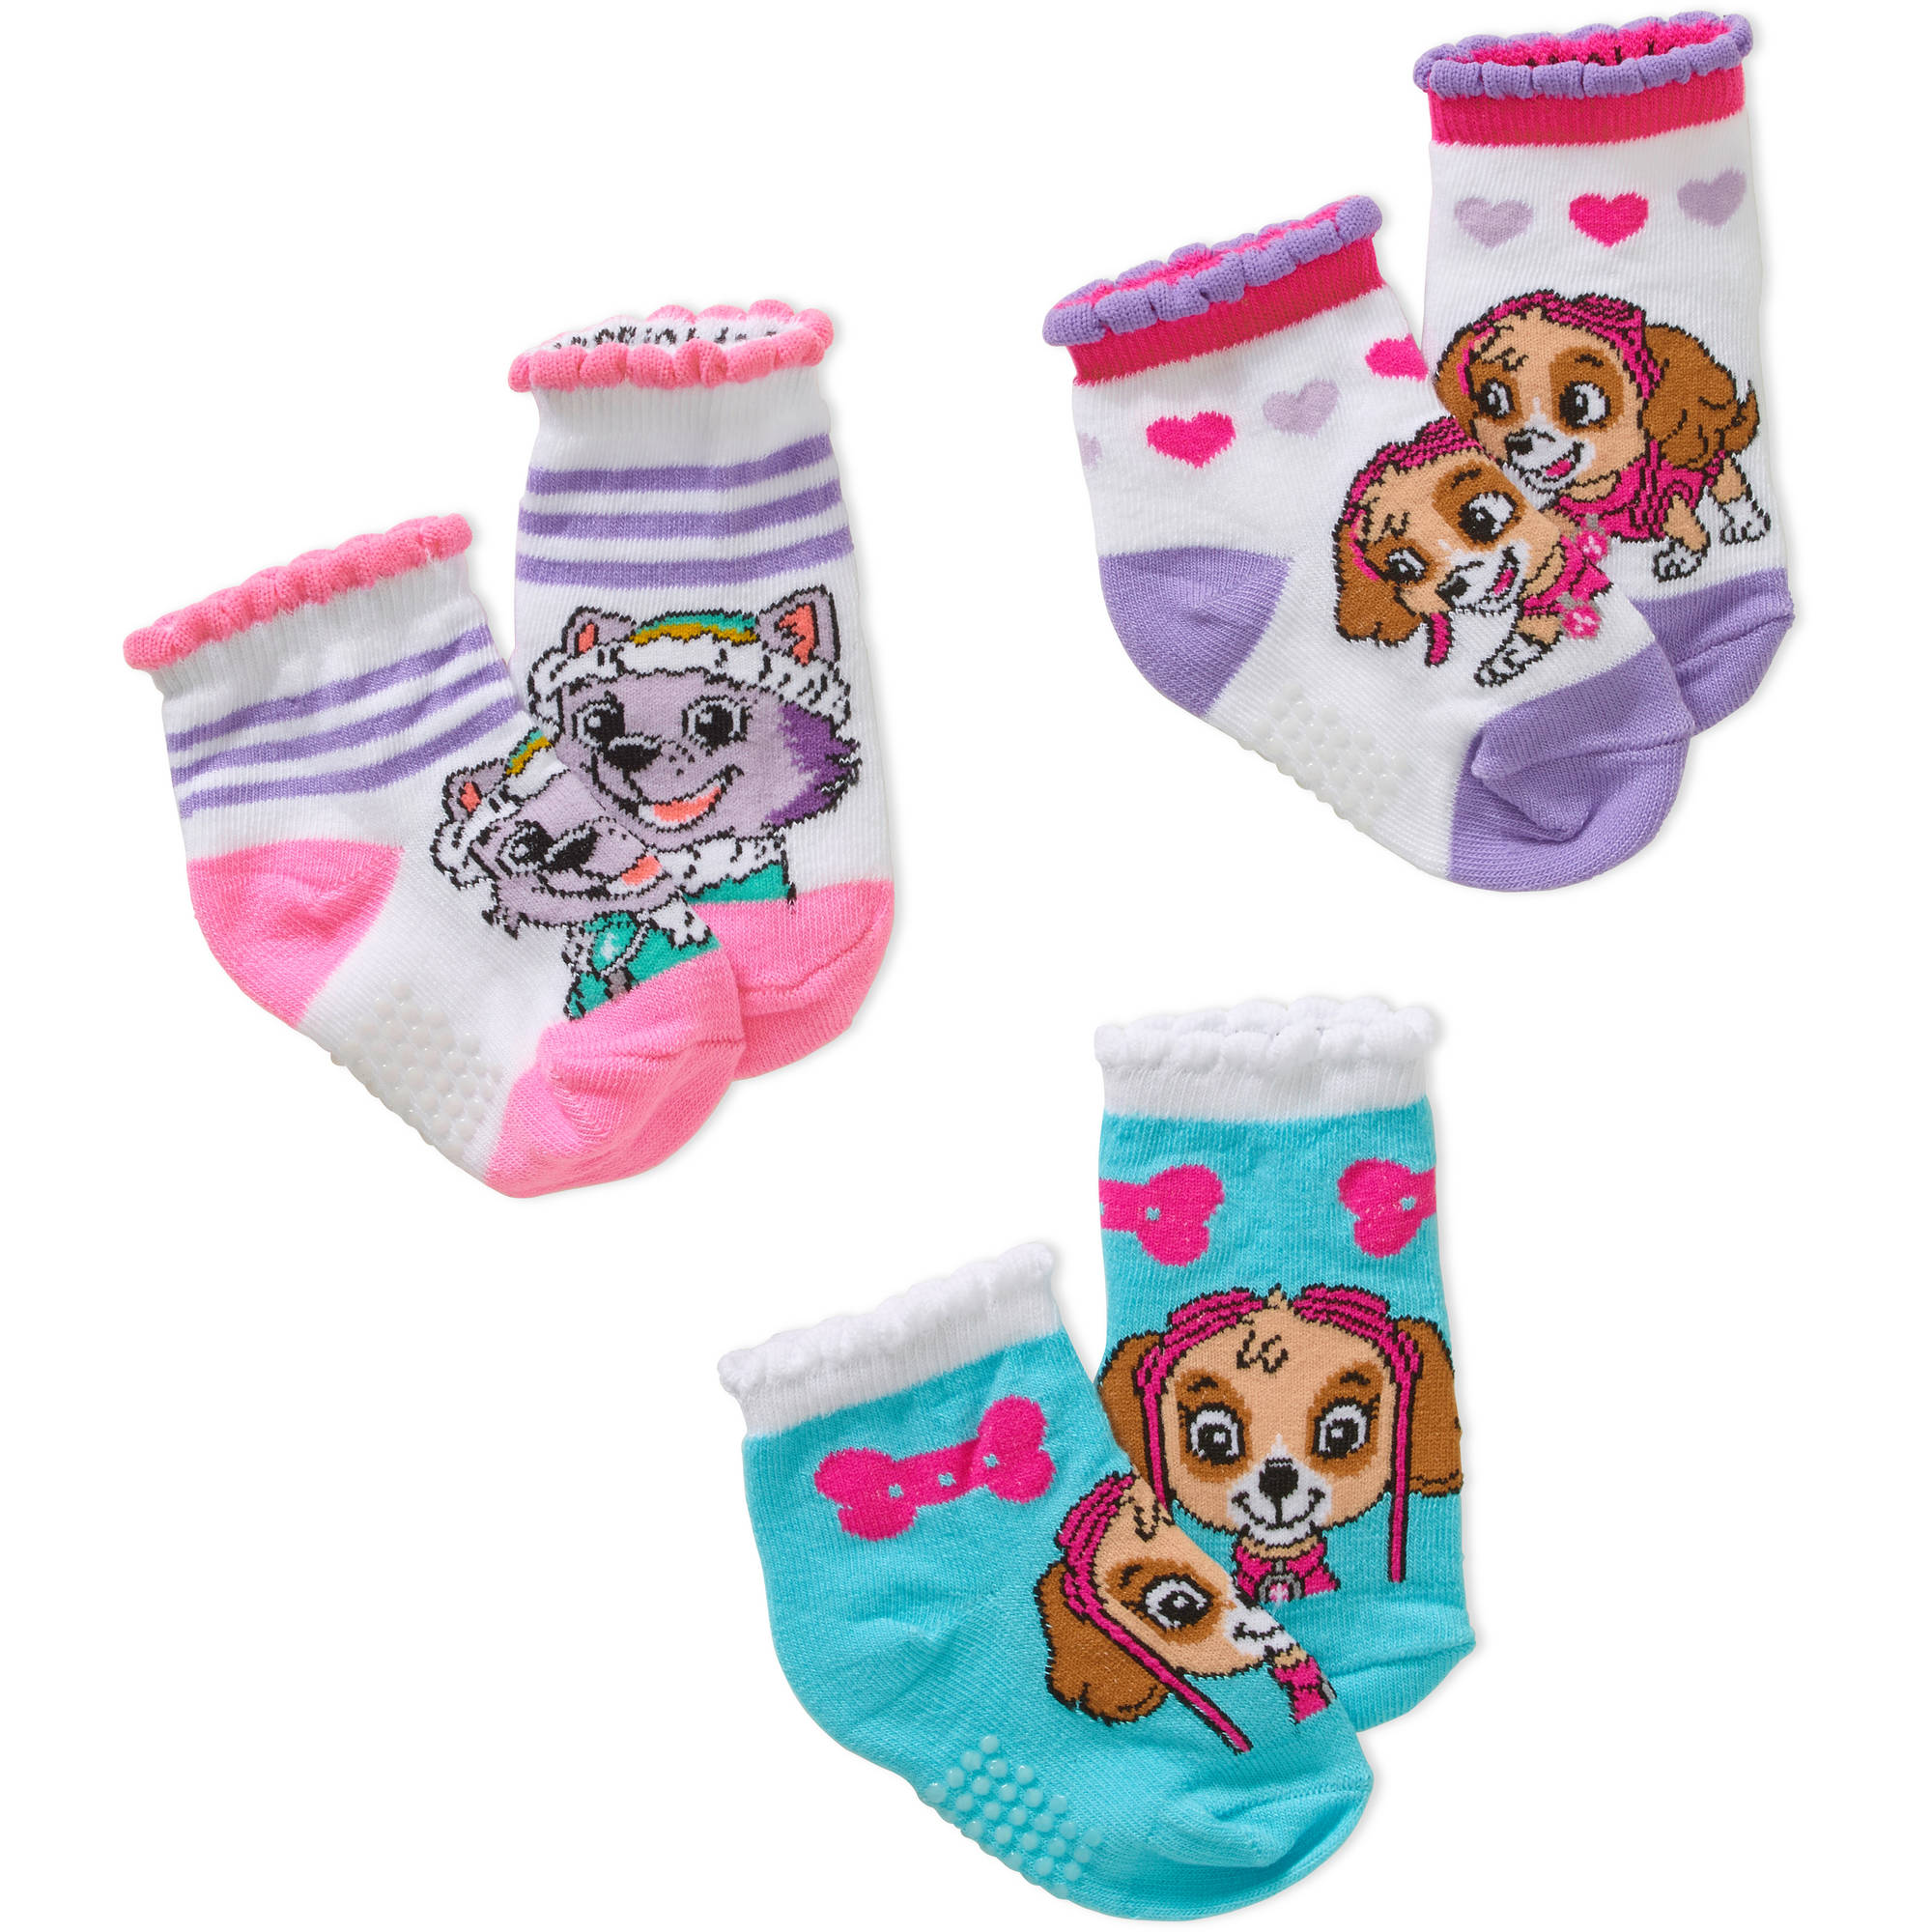 Nickelodeon Paw Patrol Newborn Infant Baby Boy Quarter Socks, 3-Pack